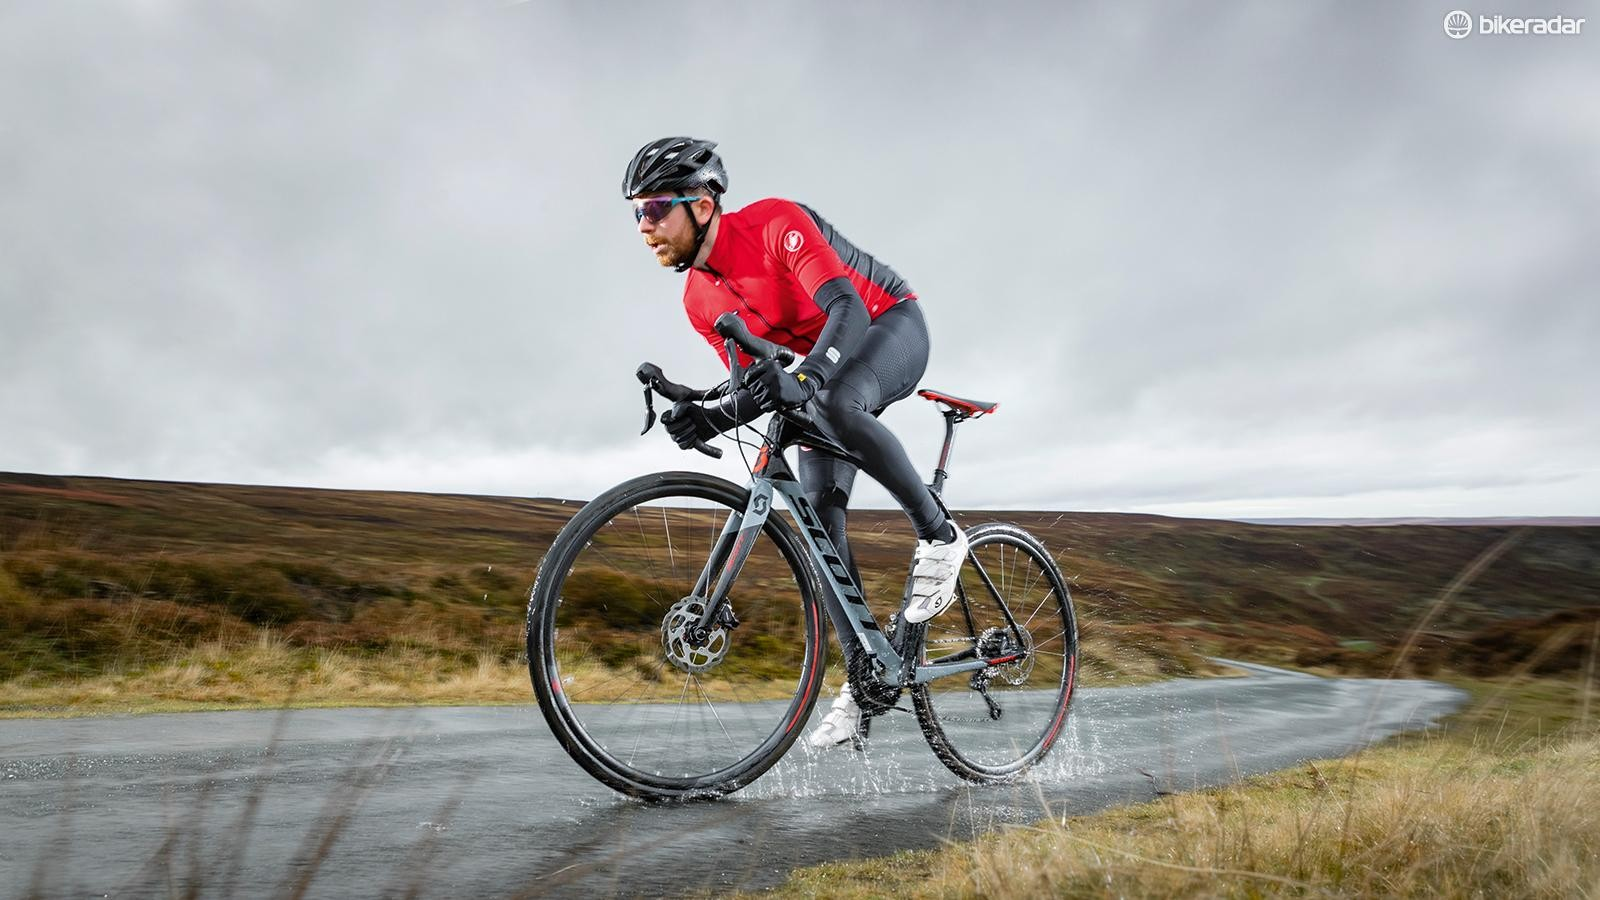 The climbs don't get any easier when an Arctic storm is bullying you…